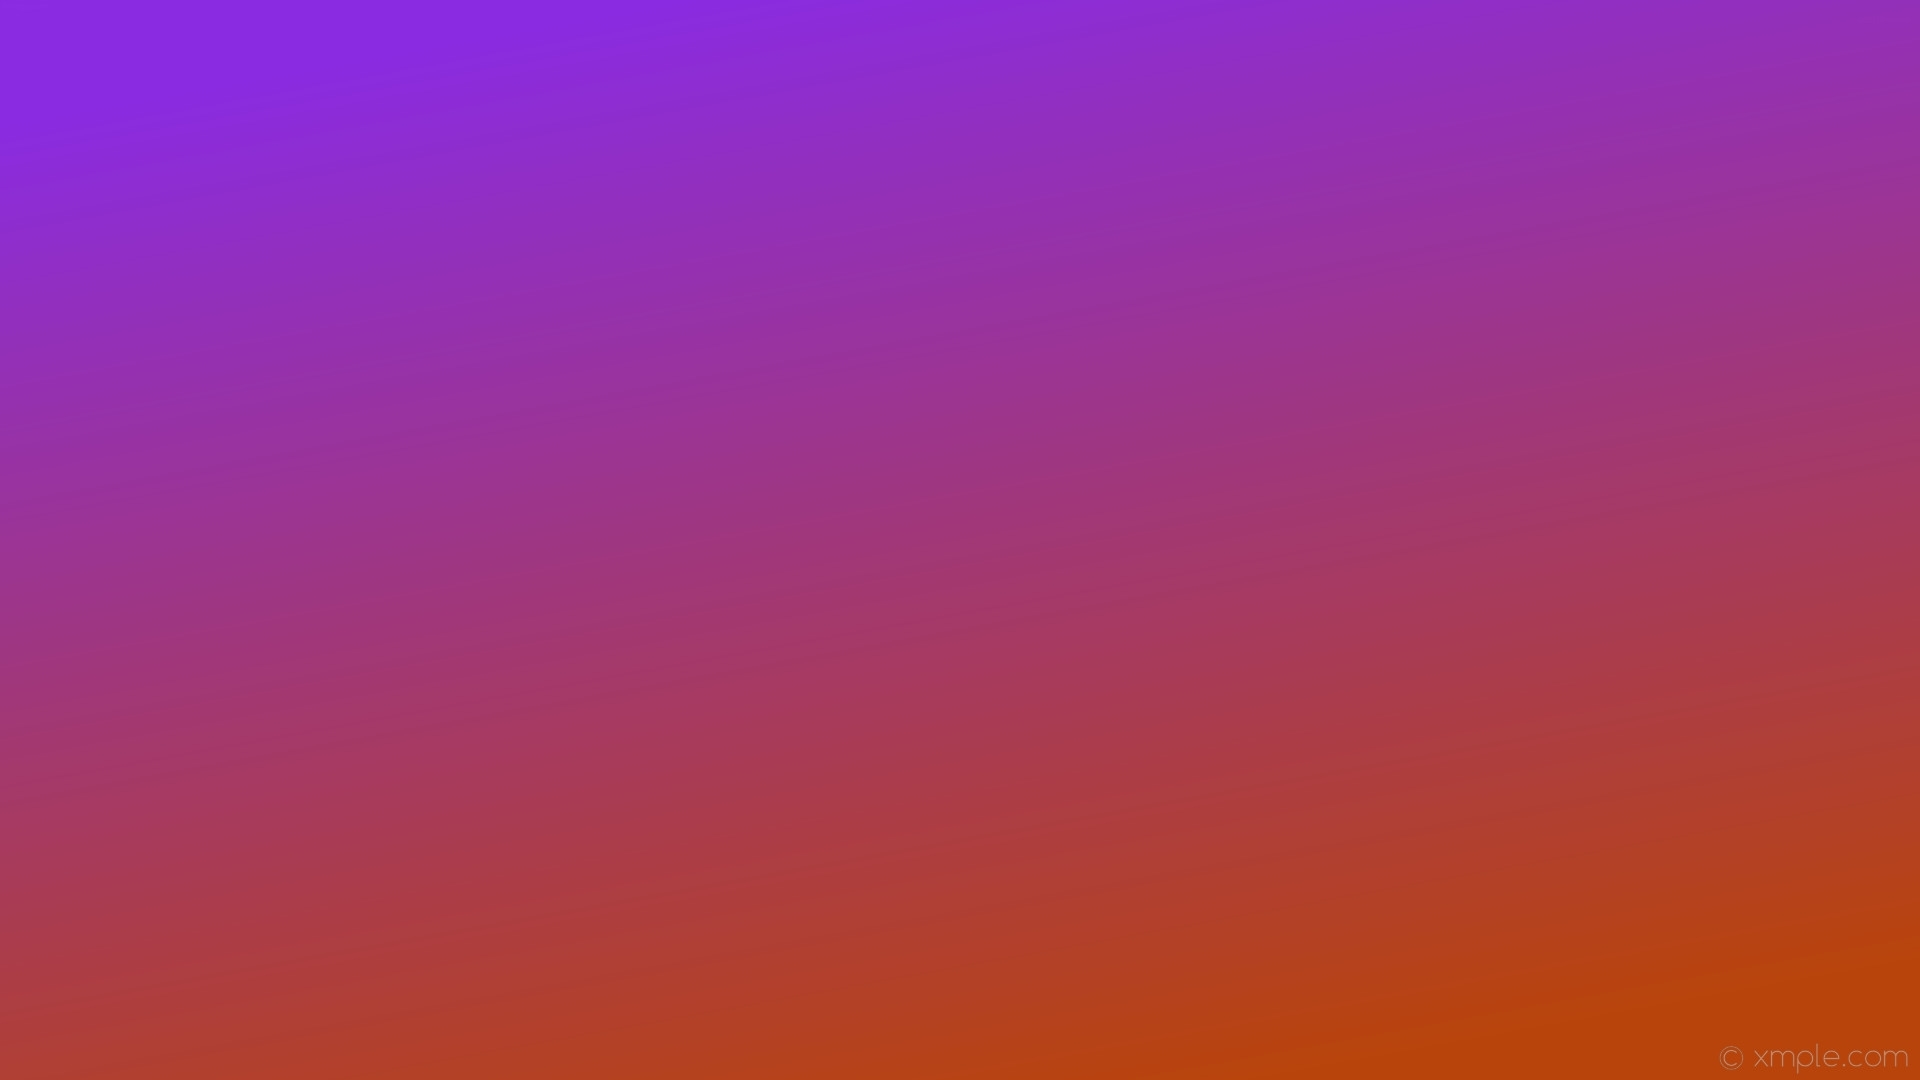 purple and orange wallpaper (80+ images)